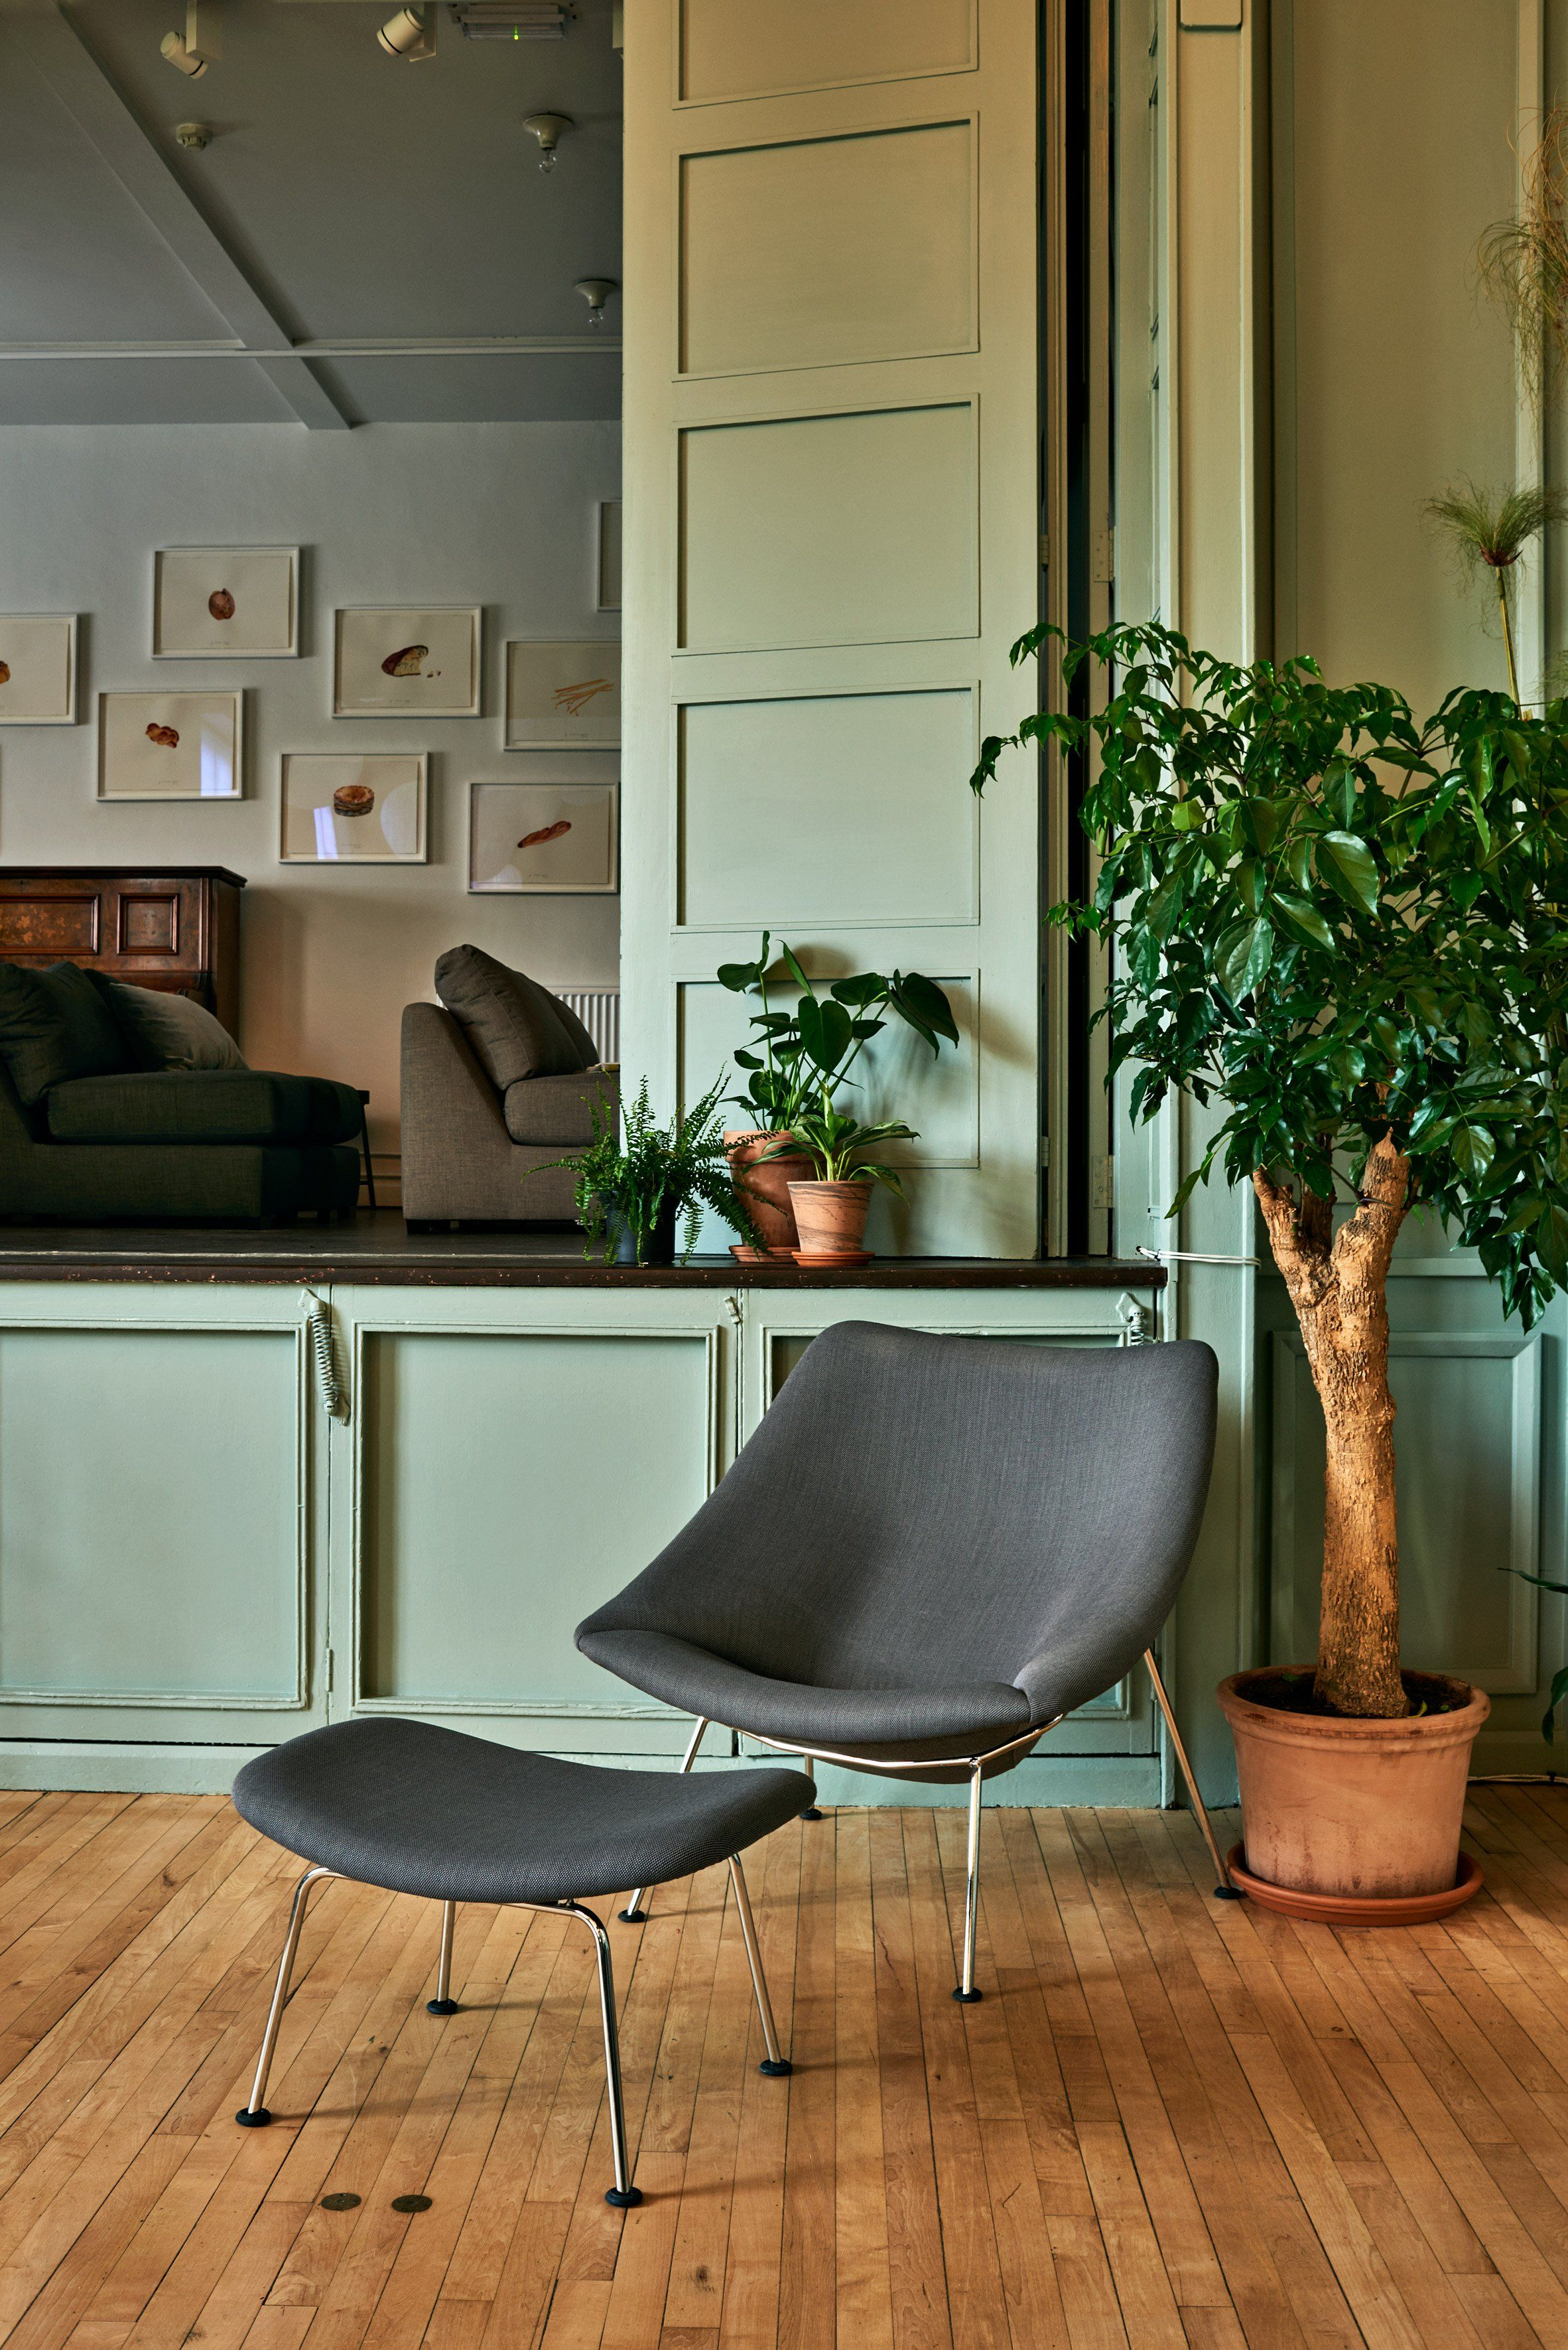 ... Community Centre In London Featuring Our Grey Oyster Chair. This  Interior Is Part Of Refettorio Felix, A Community Kitchen Designed By  Artifort Designer ...